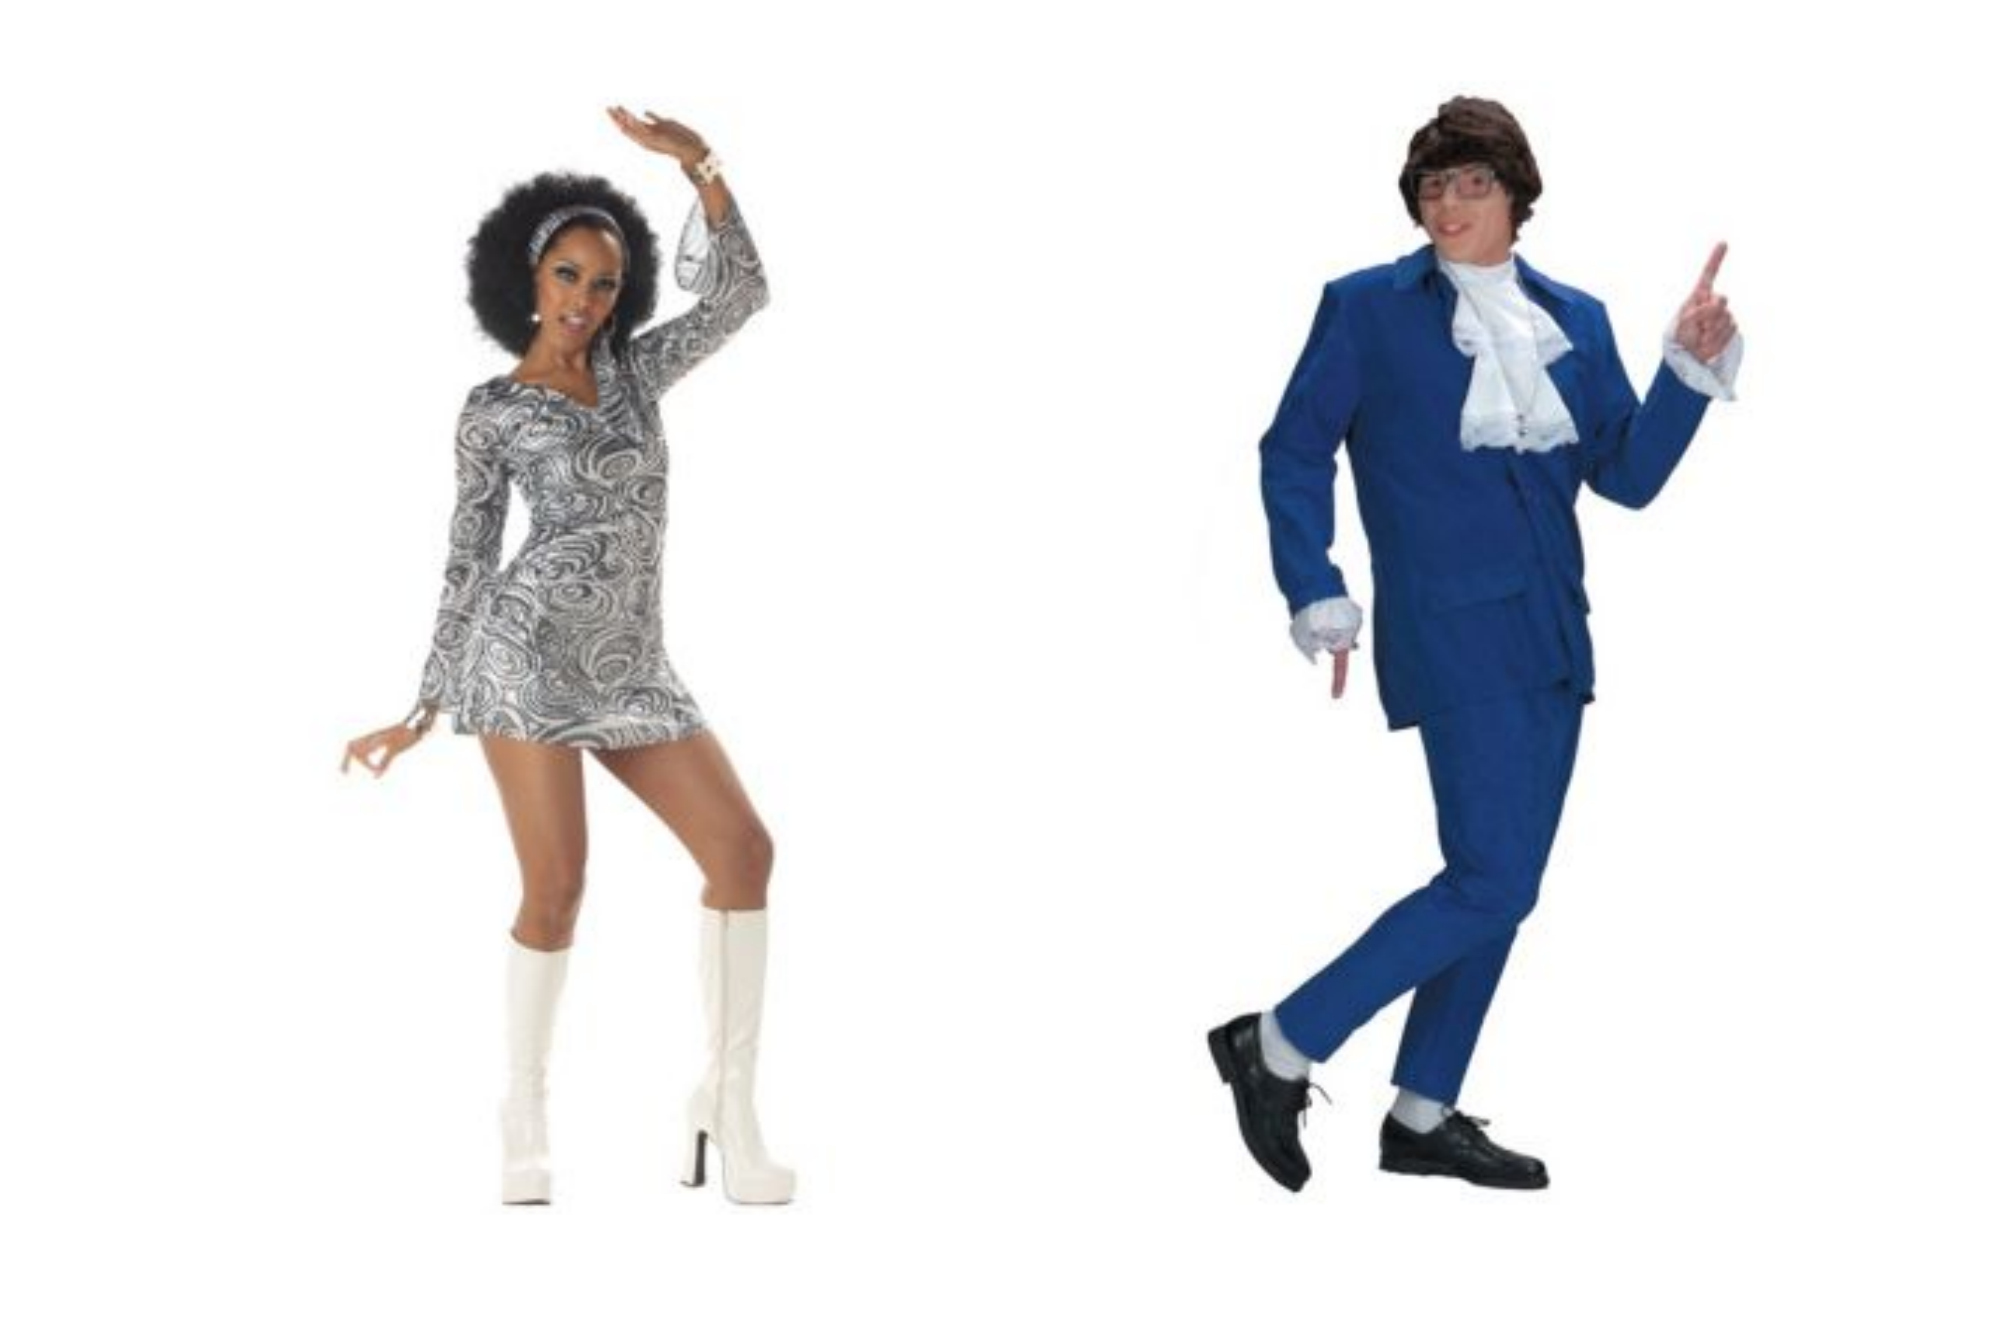 Austin Powers and groovy 60s girl Halloween costume